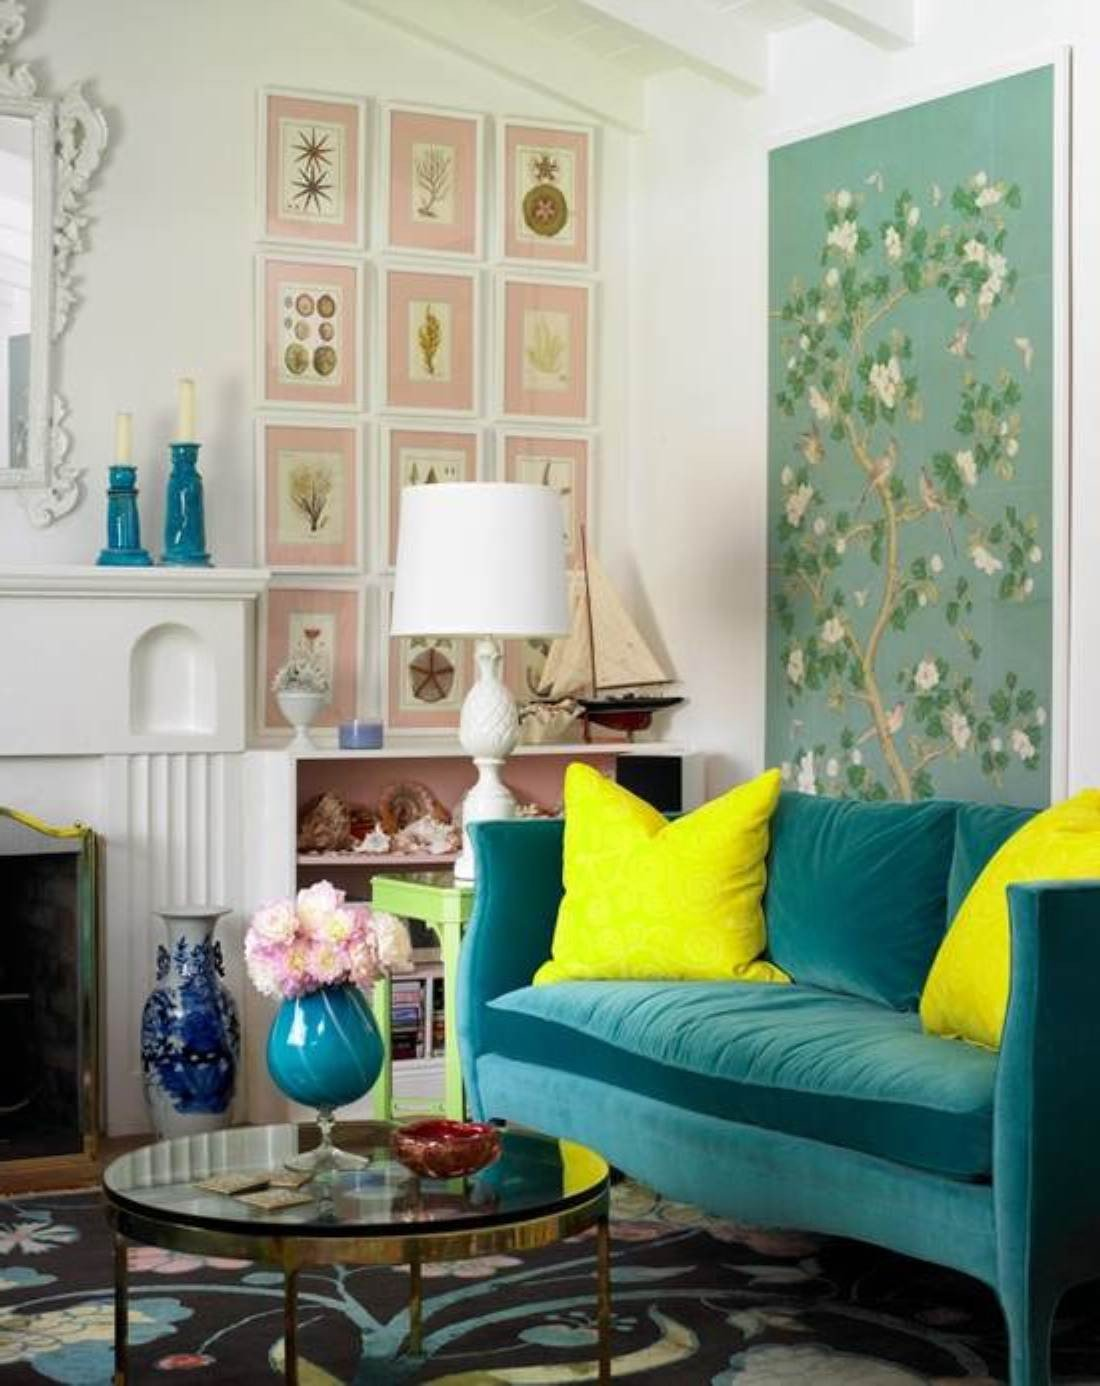 Living Room Ideasfor Small Spaces 30 Amazing Small Spaces Living Room Design Ideas